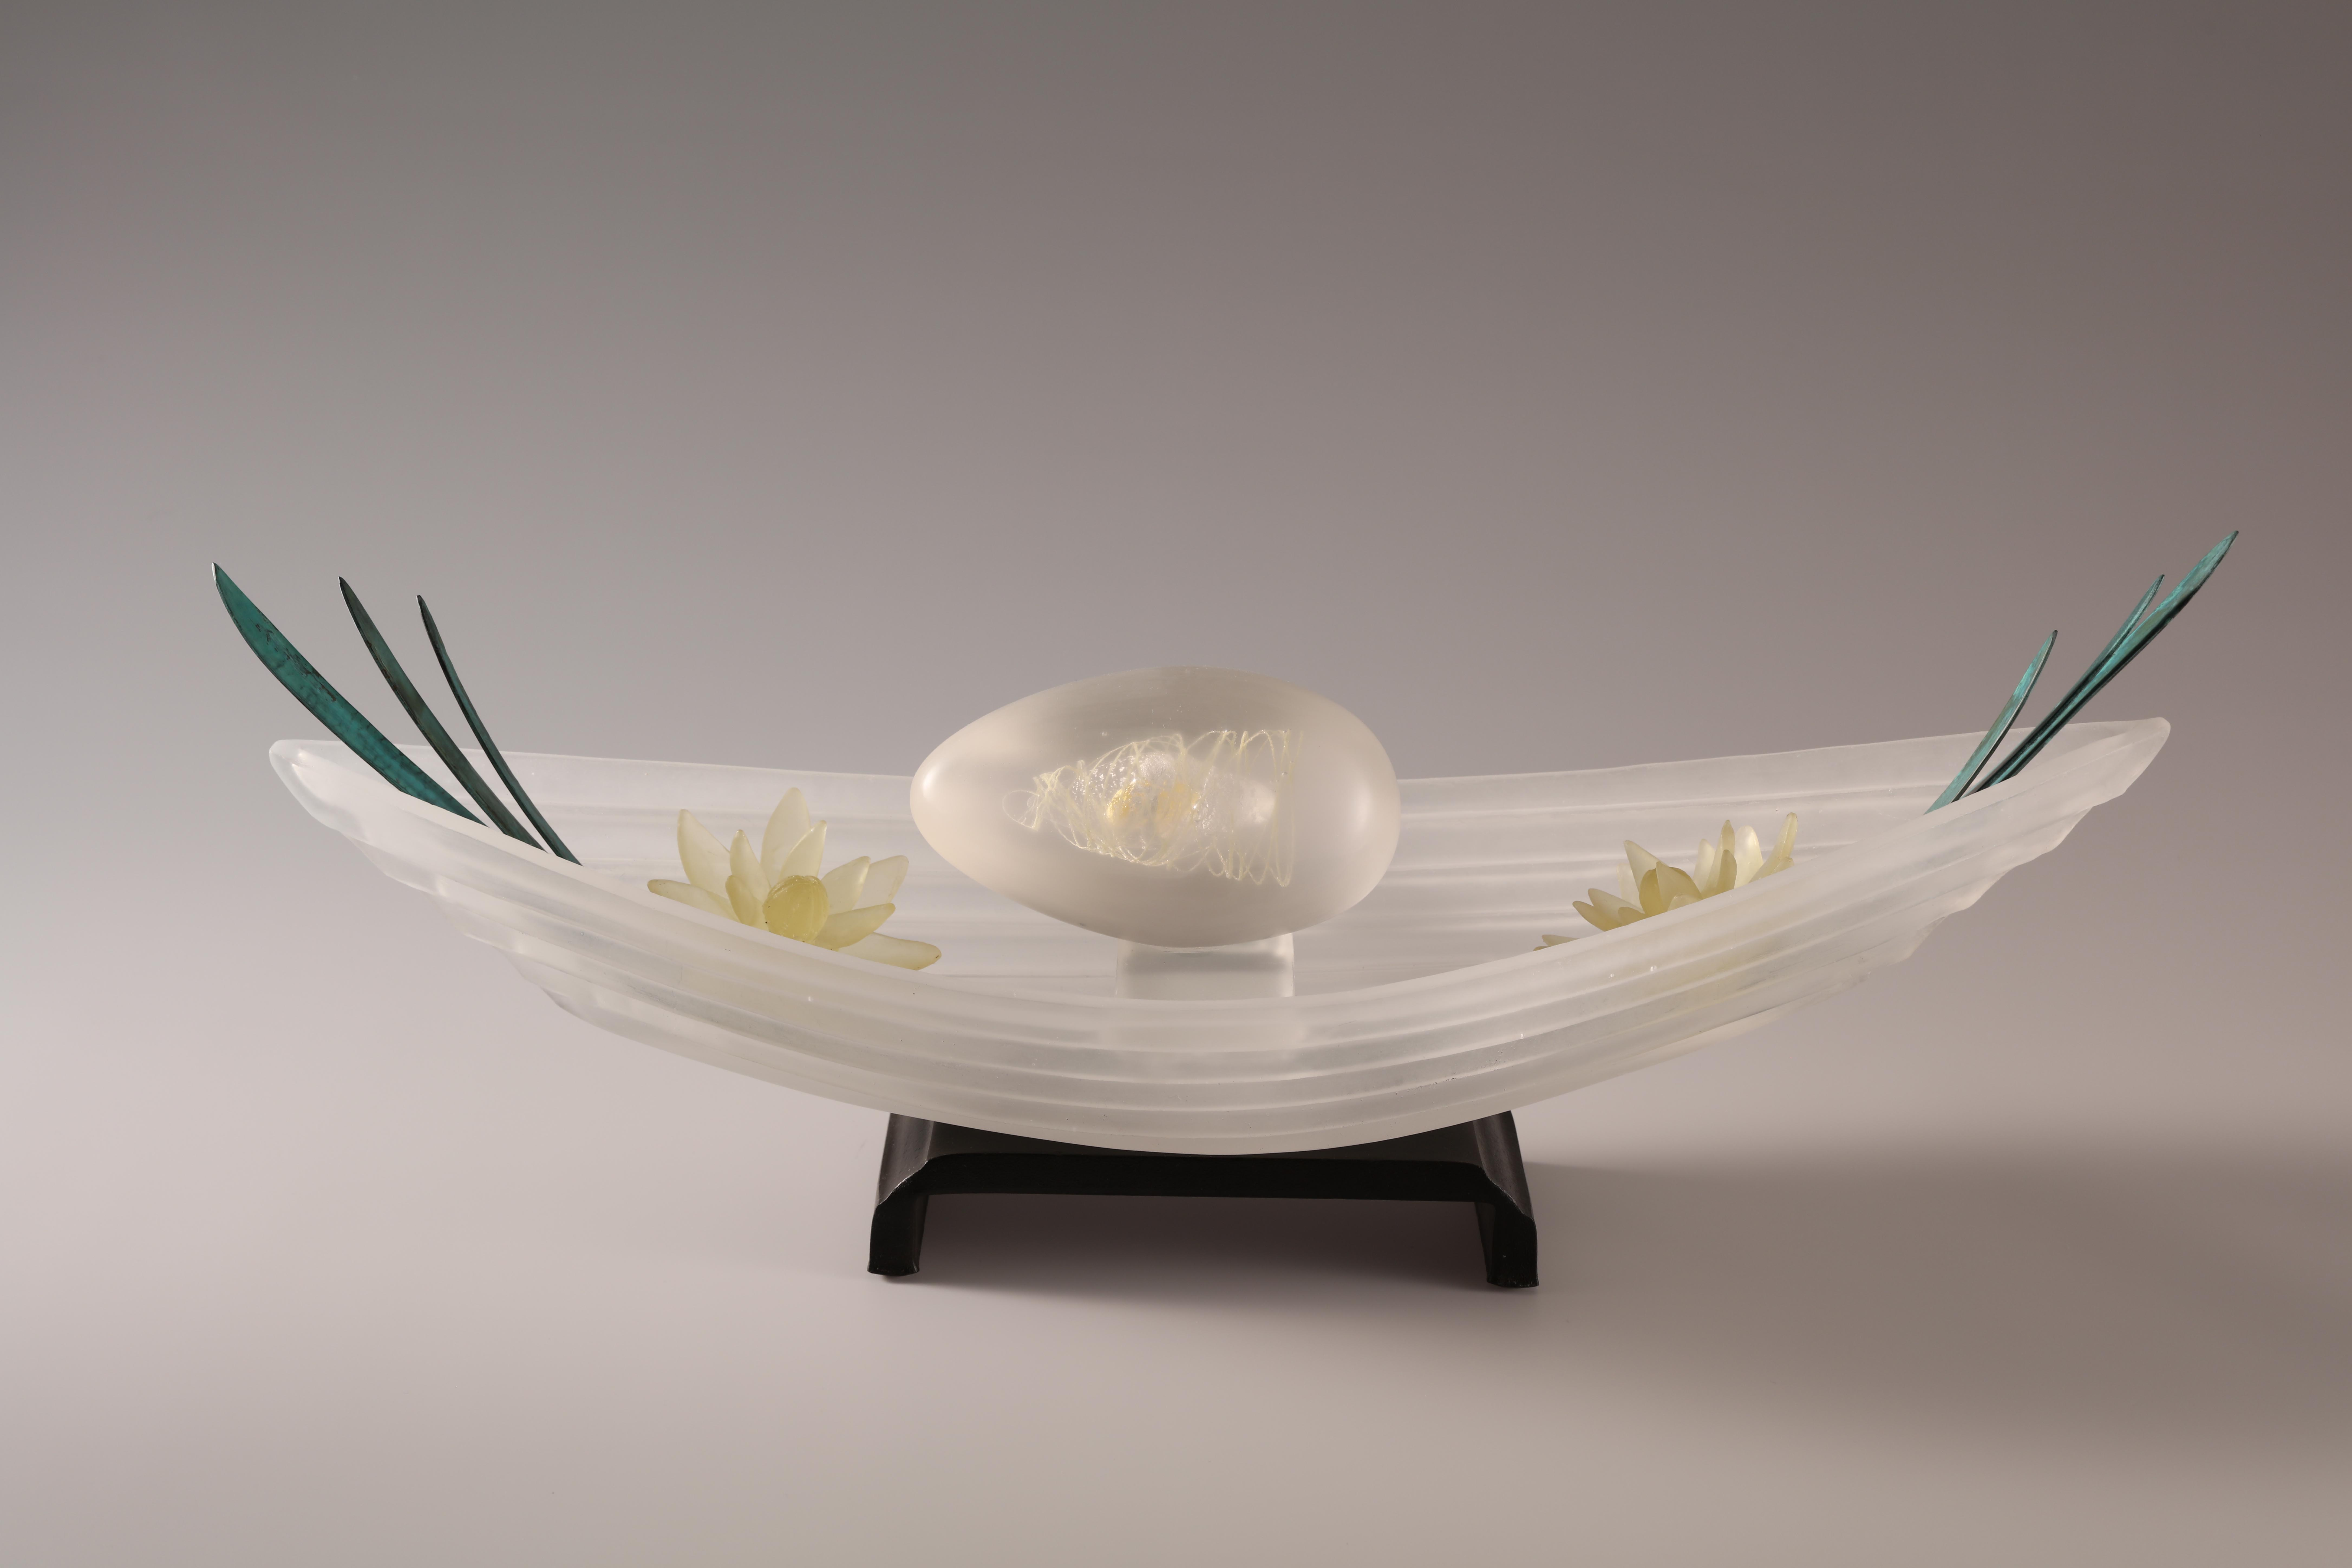 Sculpture of cast glass boat and amber flowers with bronze leaves on steel base.